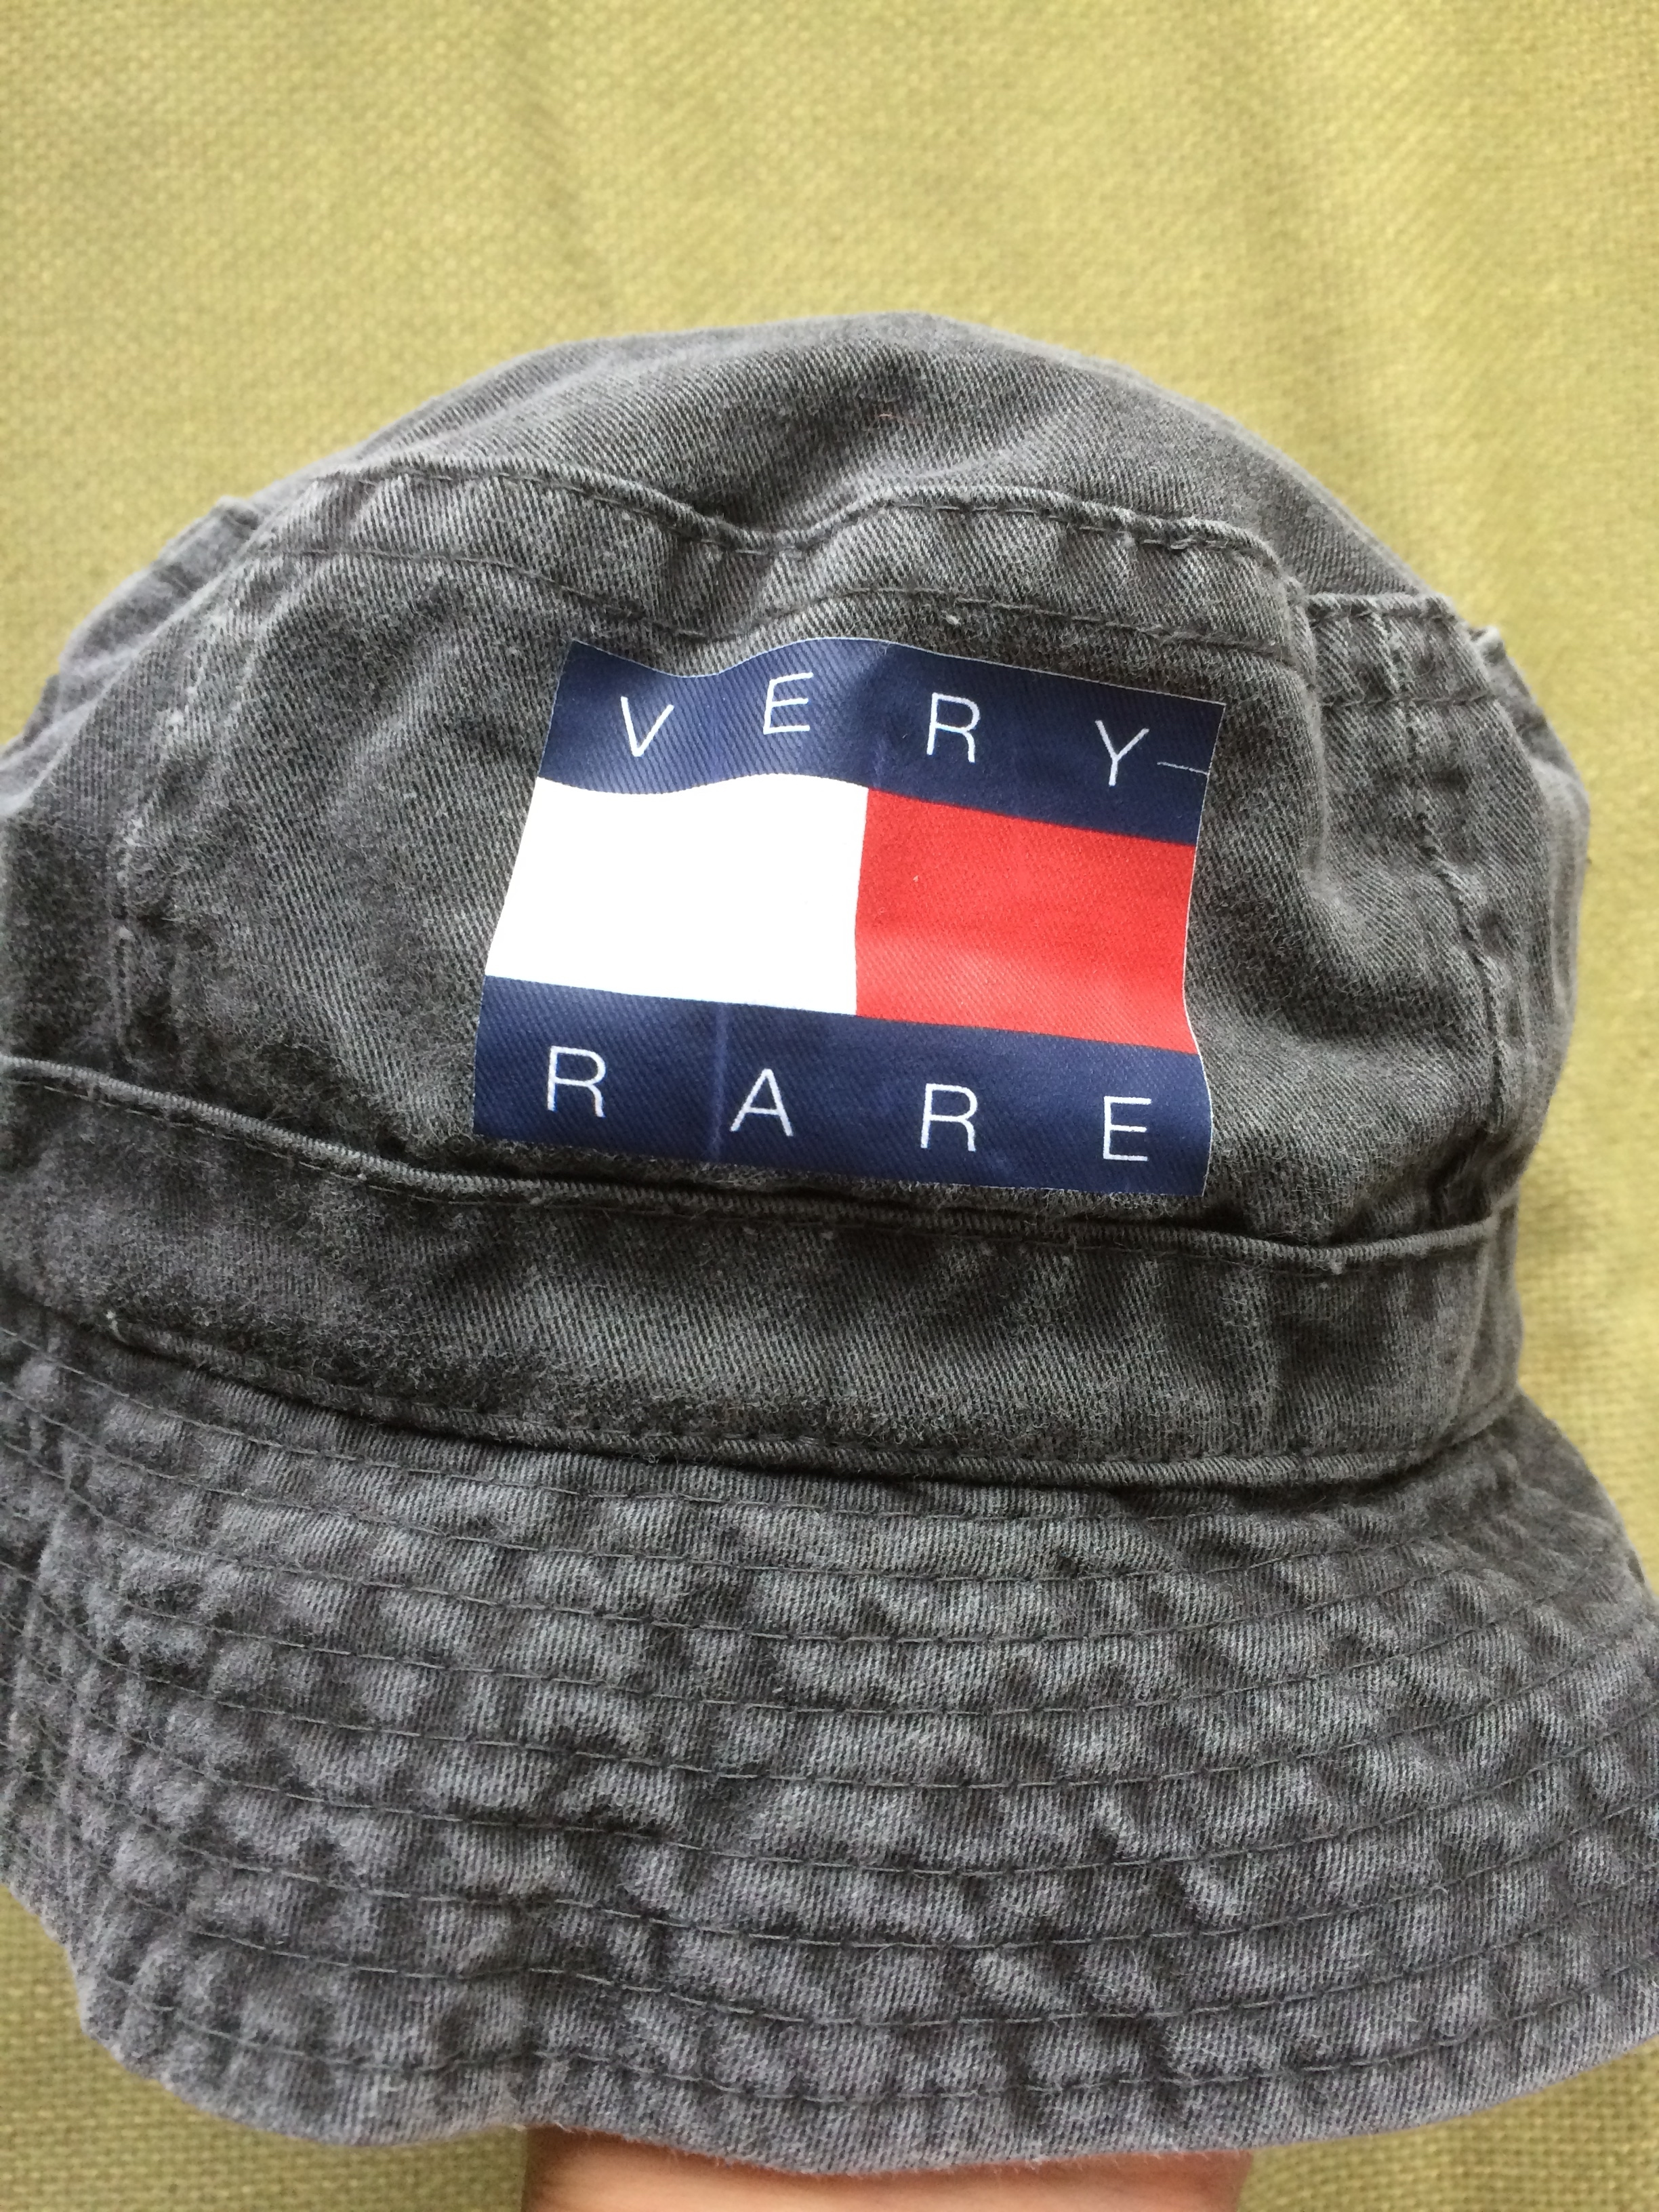 Kyc Vintage KYC Tommy Hilfiger Bucket Hat Size one size - Hats for ... e15bd5b787e